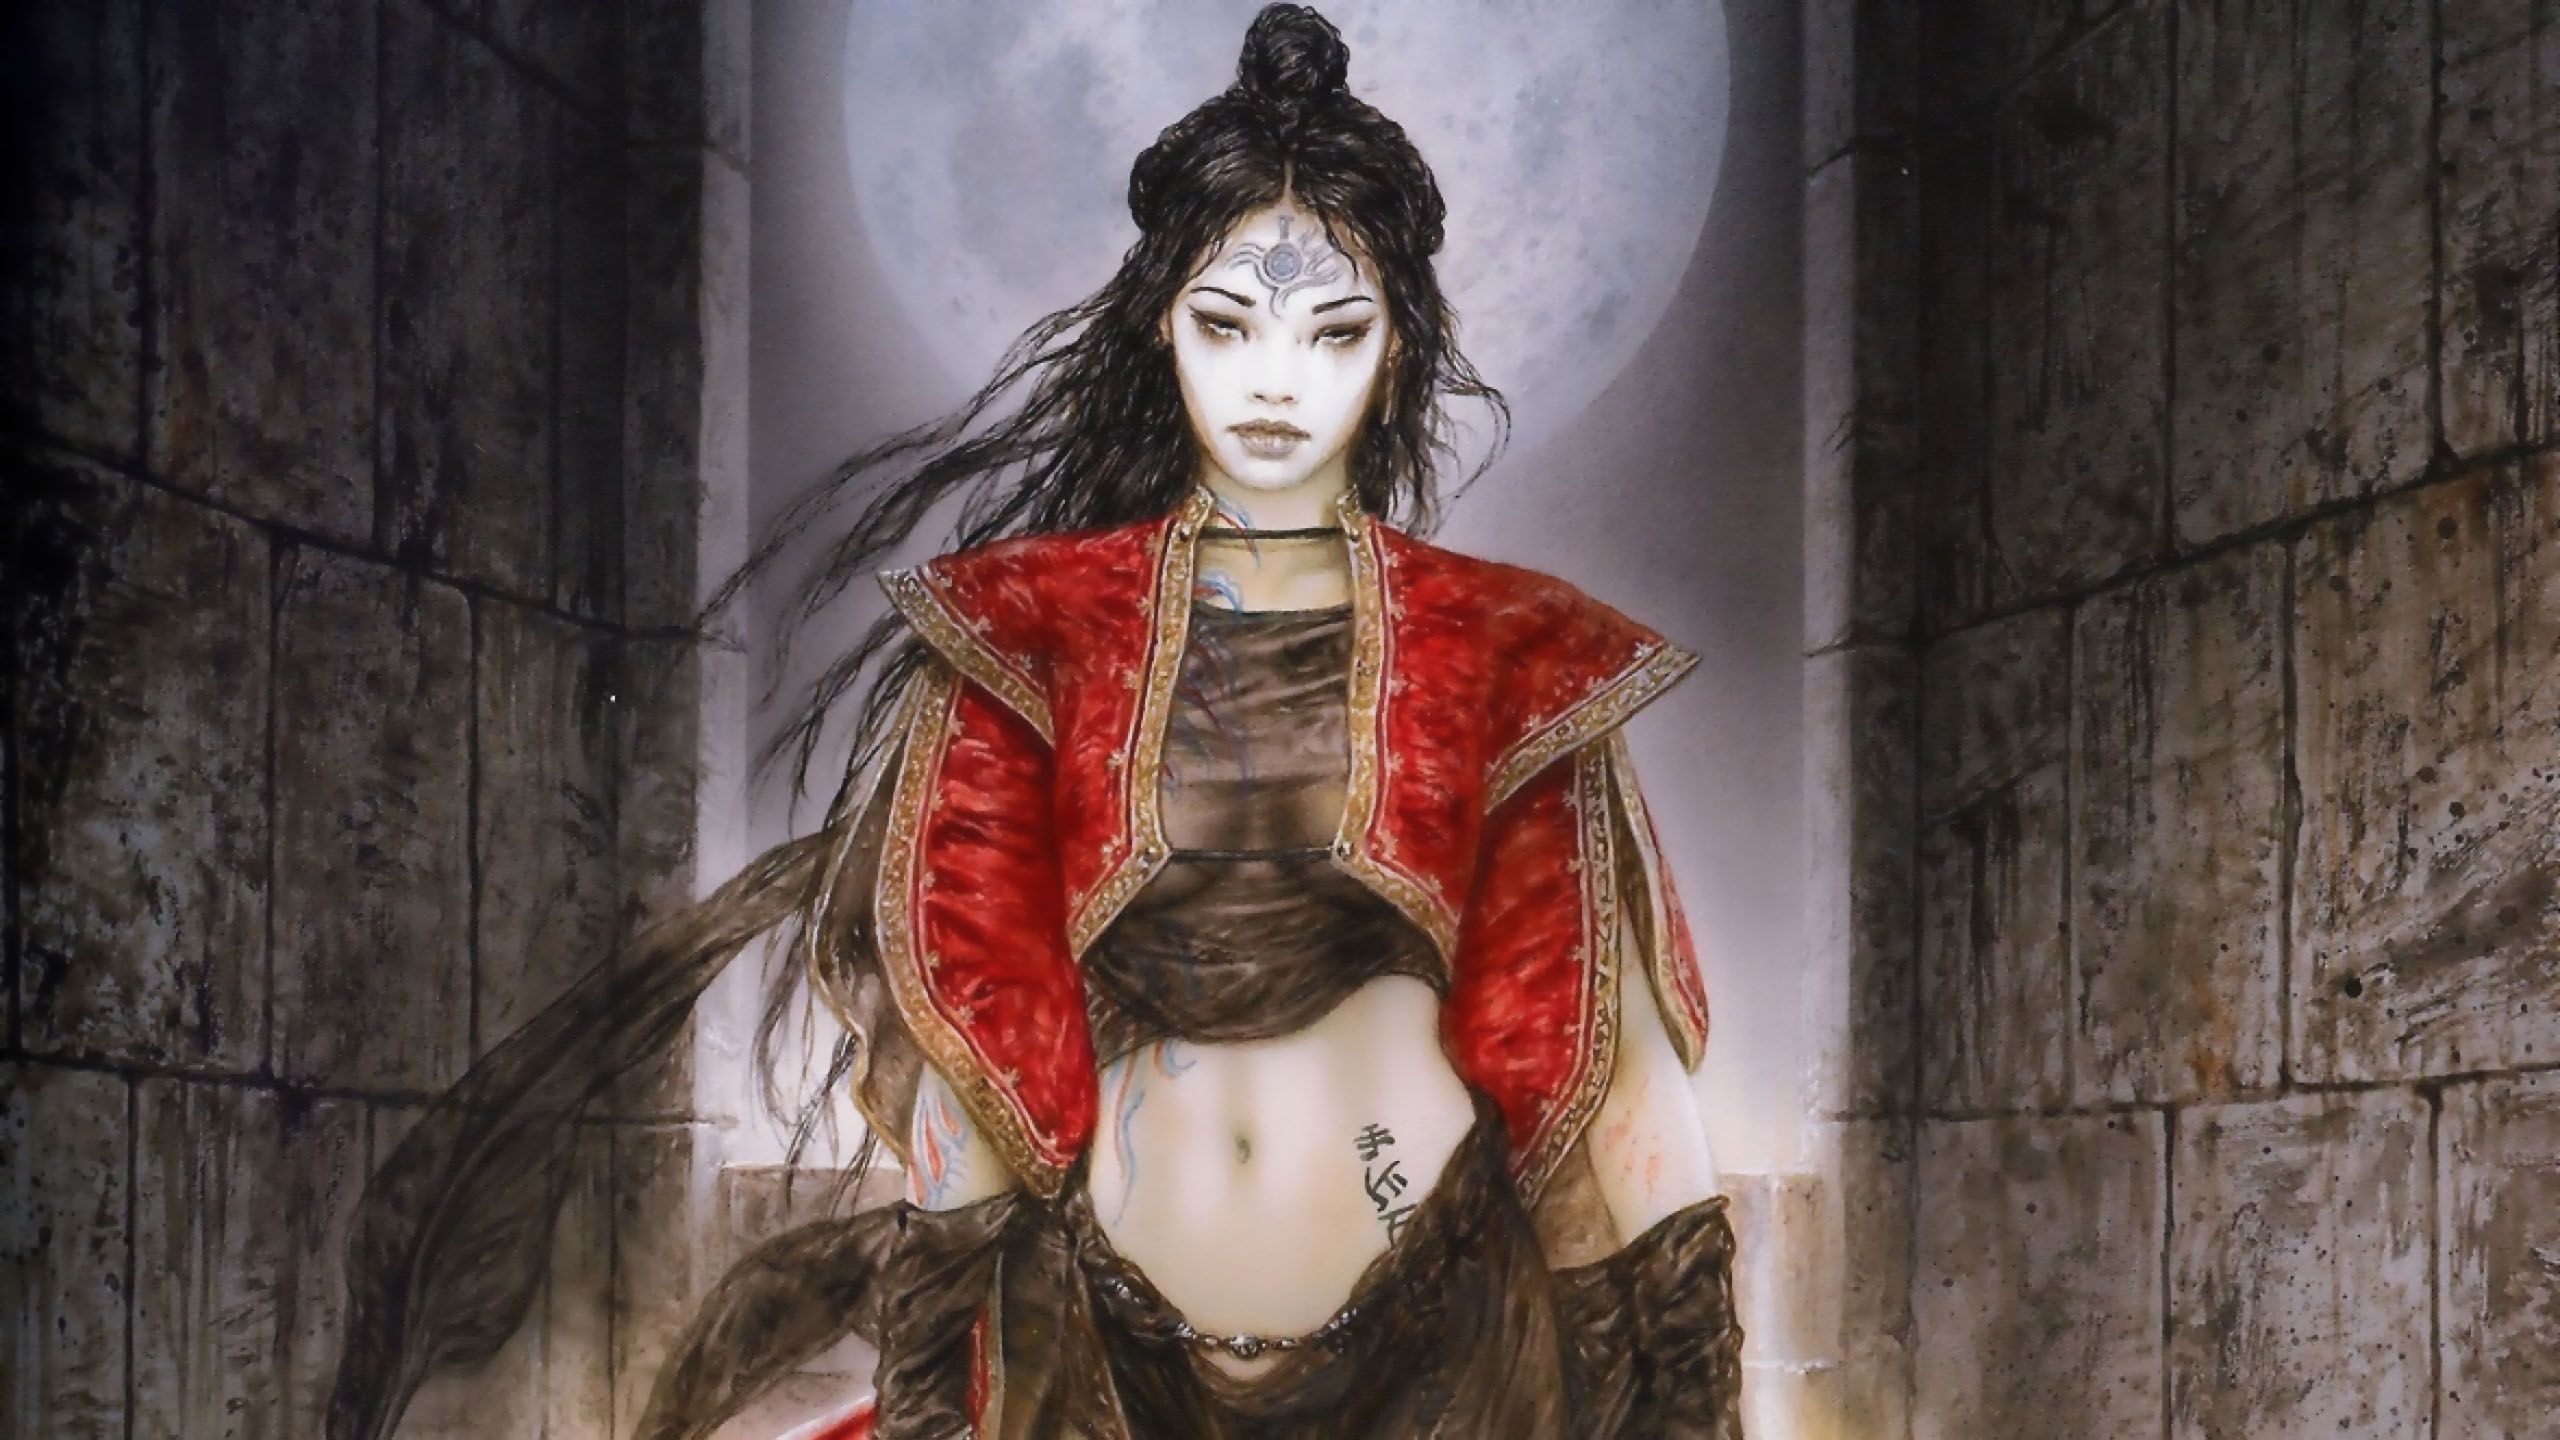 View download comment and rate this 2560x1440 luis royo wallpaper view download comment and rate this 2560x1440 luis royo wallpaper wallpaper abyss voltagebd Gallery